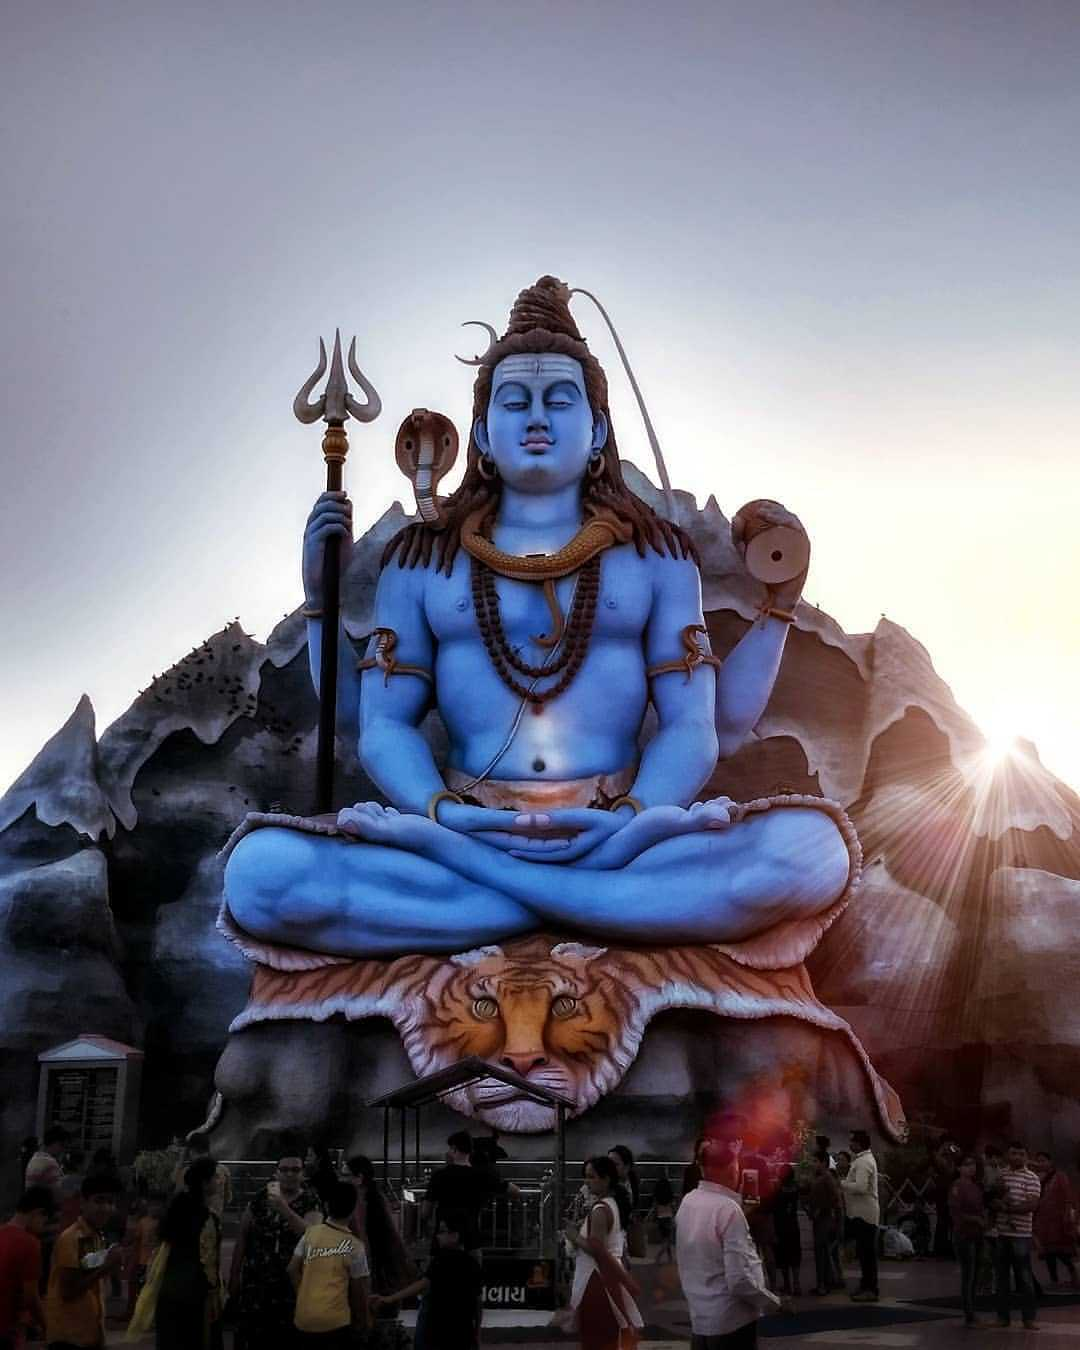 Alluring Lord Shiva Wallpaper - Perfect Lord Shiva Wallpaper for Mobile. Beautiful lord shiva images HD 1080p download. Lord shiva hd wallpapers 1920x1080 download for mobile. Lord shiva 3d wallpapers free download mobile.